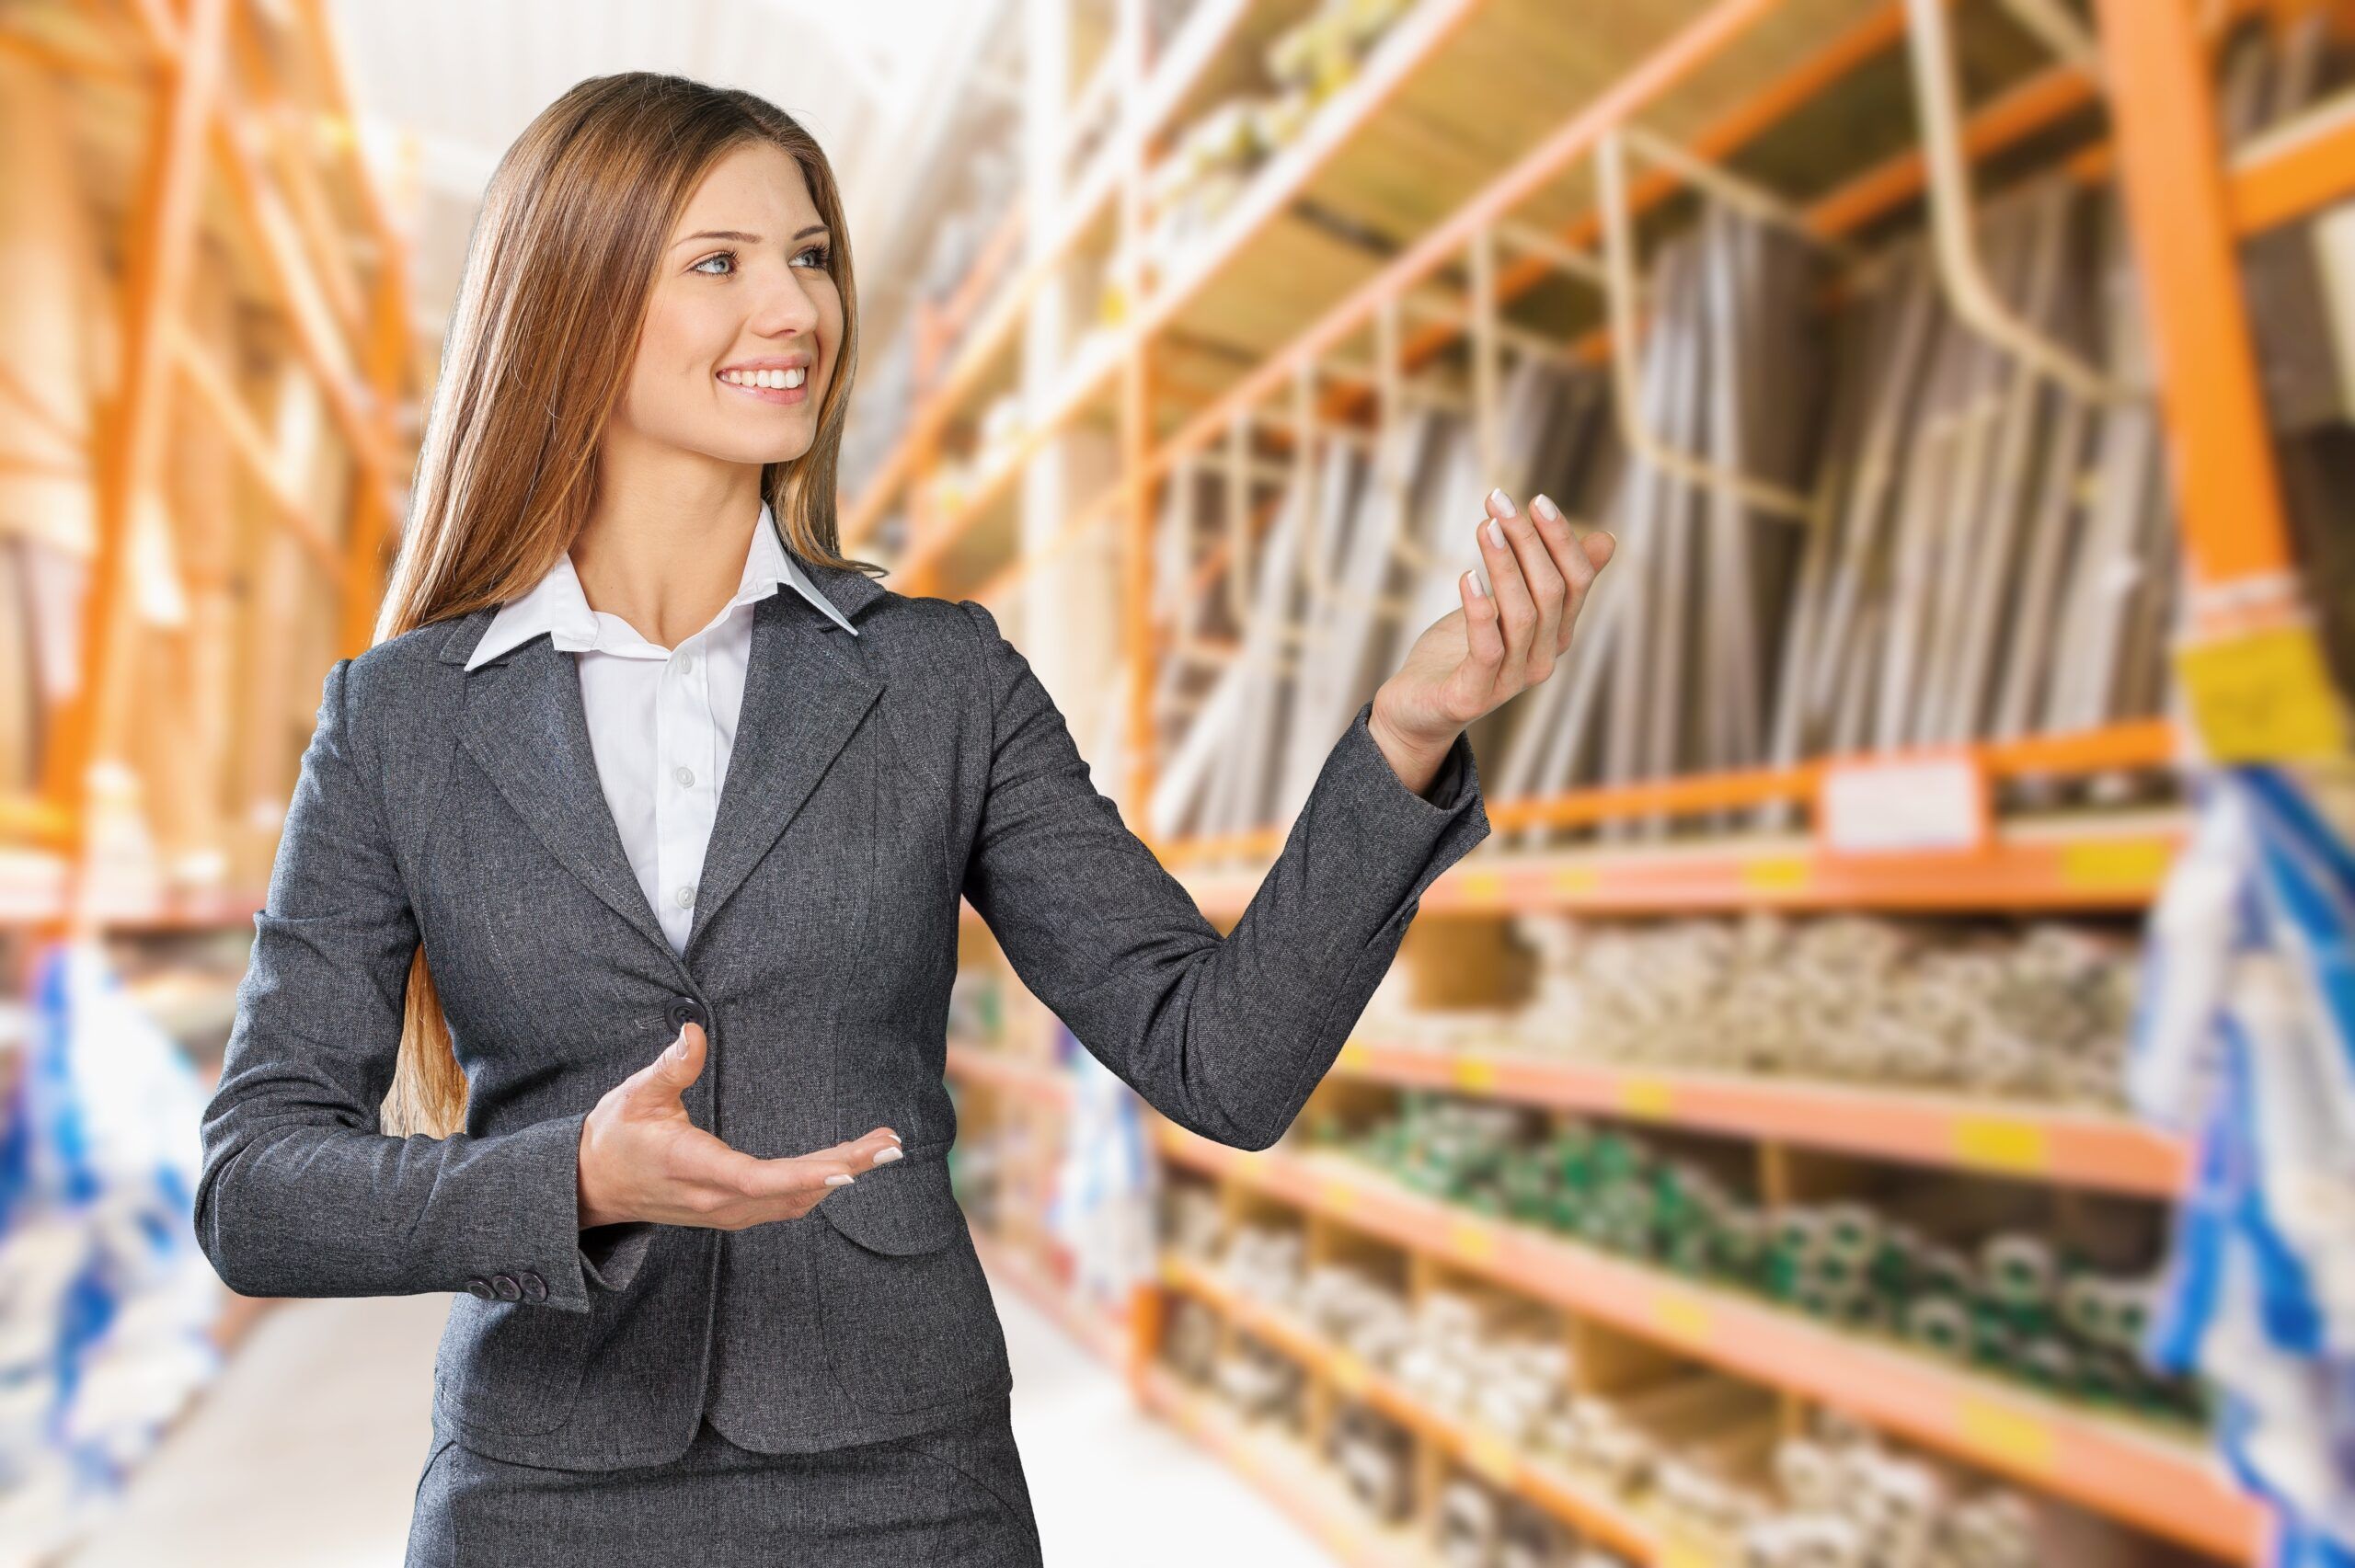 Woman in grey business suit in big box hardware store pointing to products on shelves